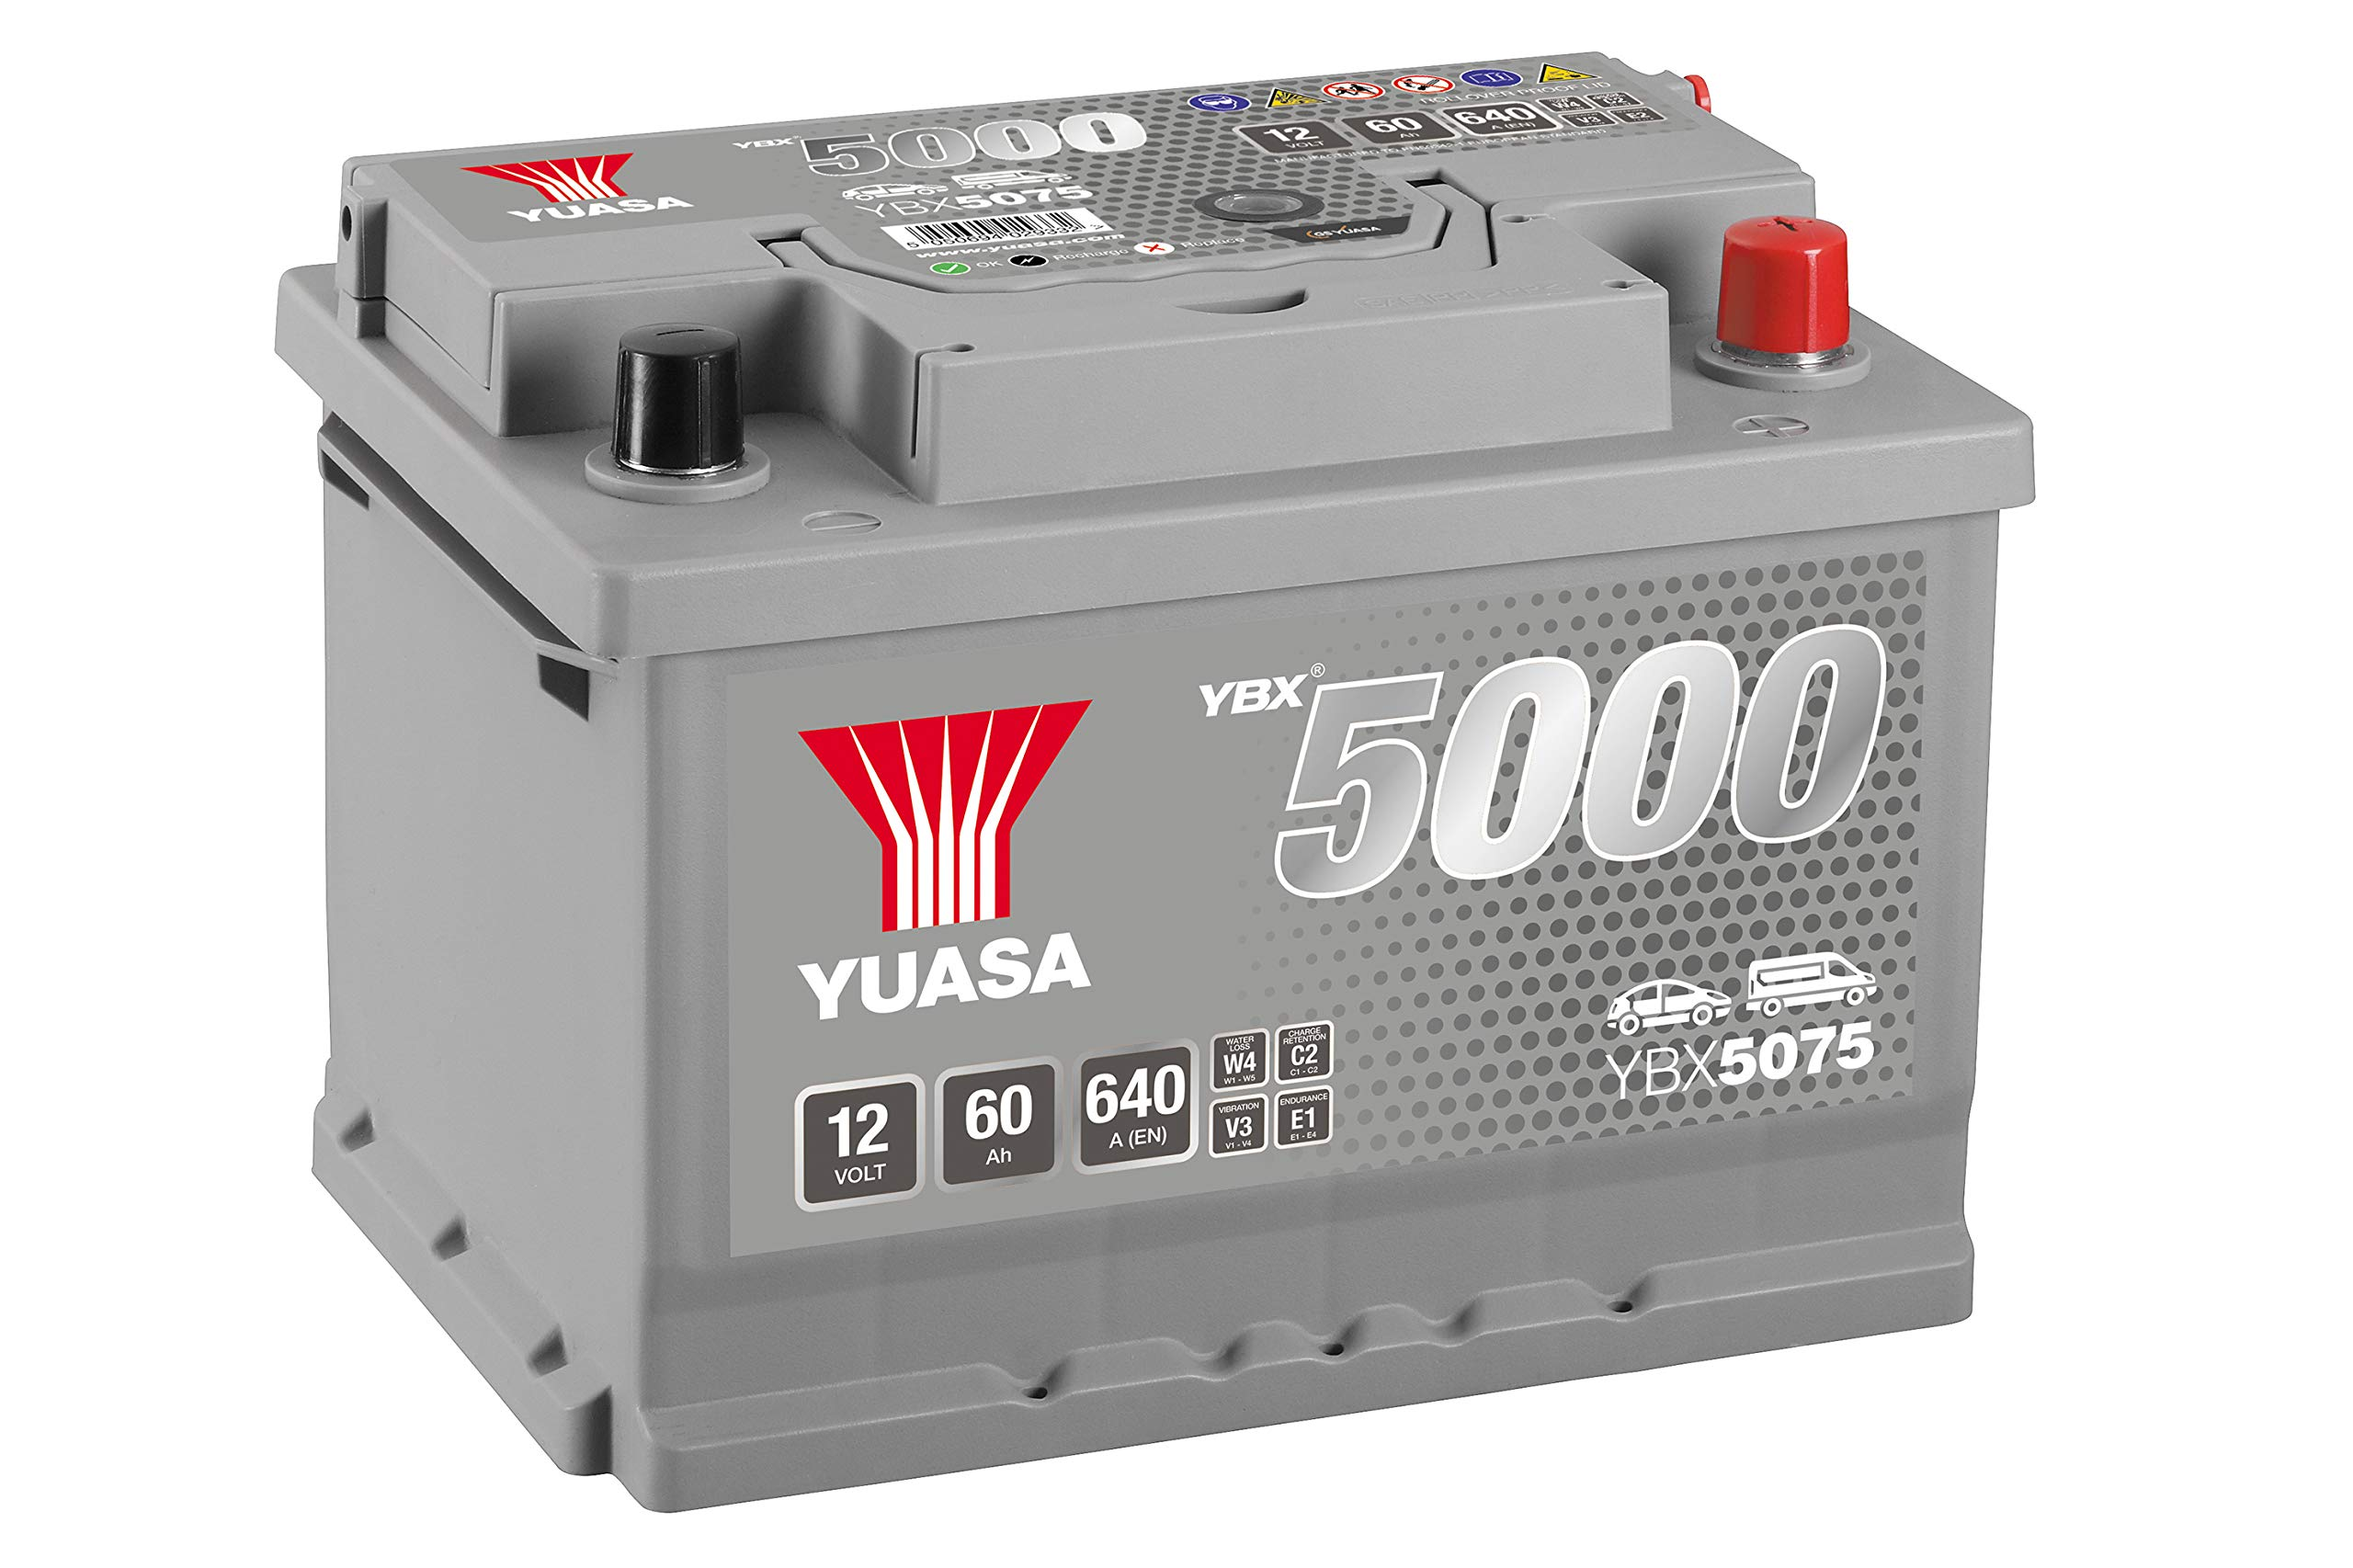 Yuasa YBX5075 12V 60Ah 620A Silver High Performance Battery